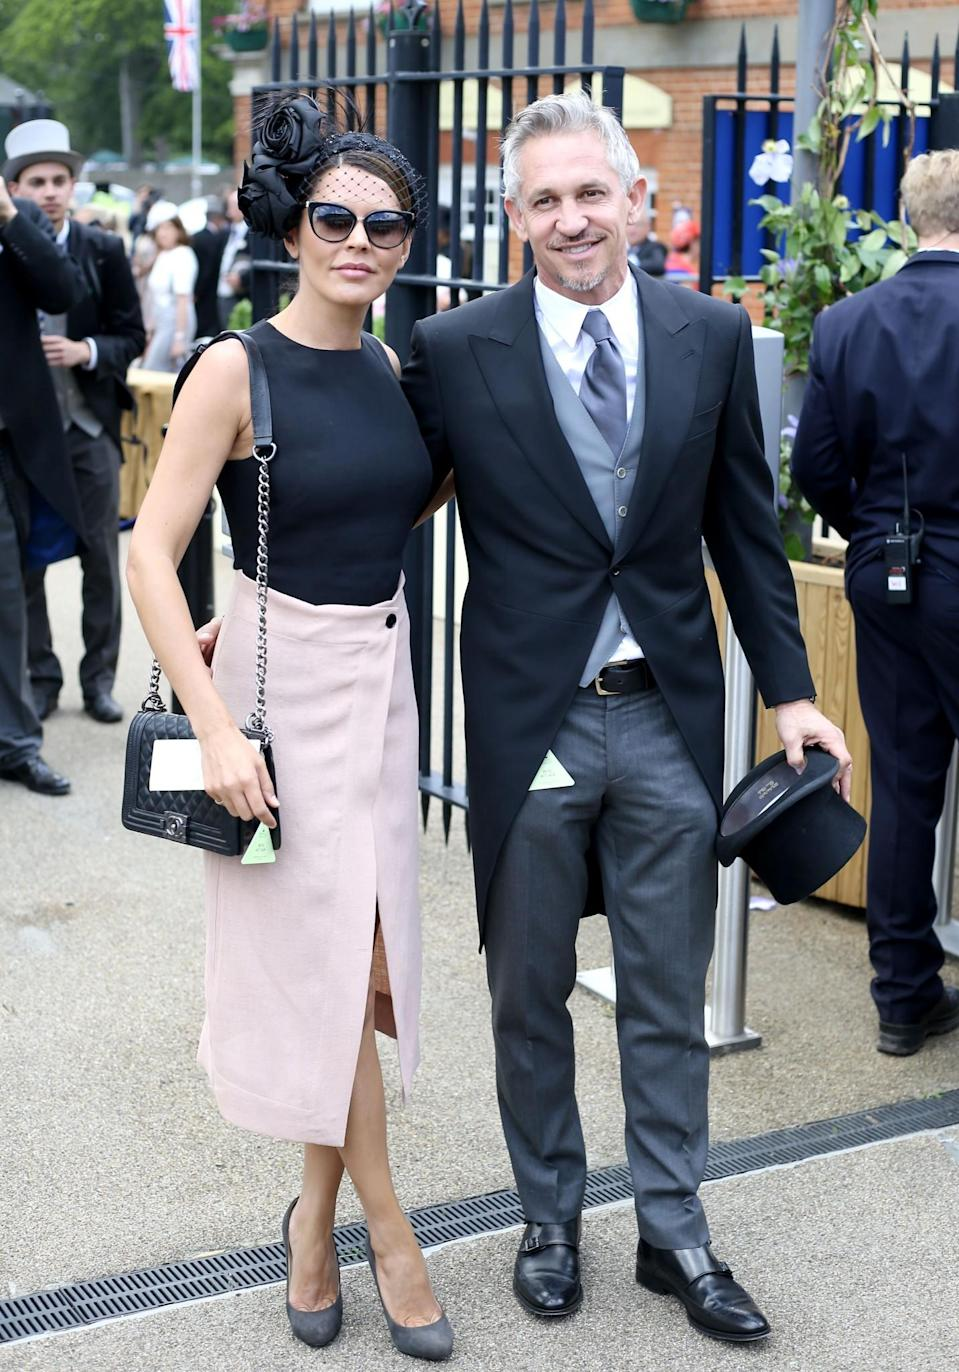 <p>Gary stayed true to the Ascot suit in 2015 while Danielle opted for a pale pink slitted skirt.<br><i>[Photo: PA]</i> </p>